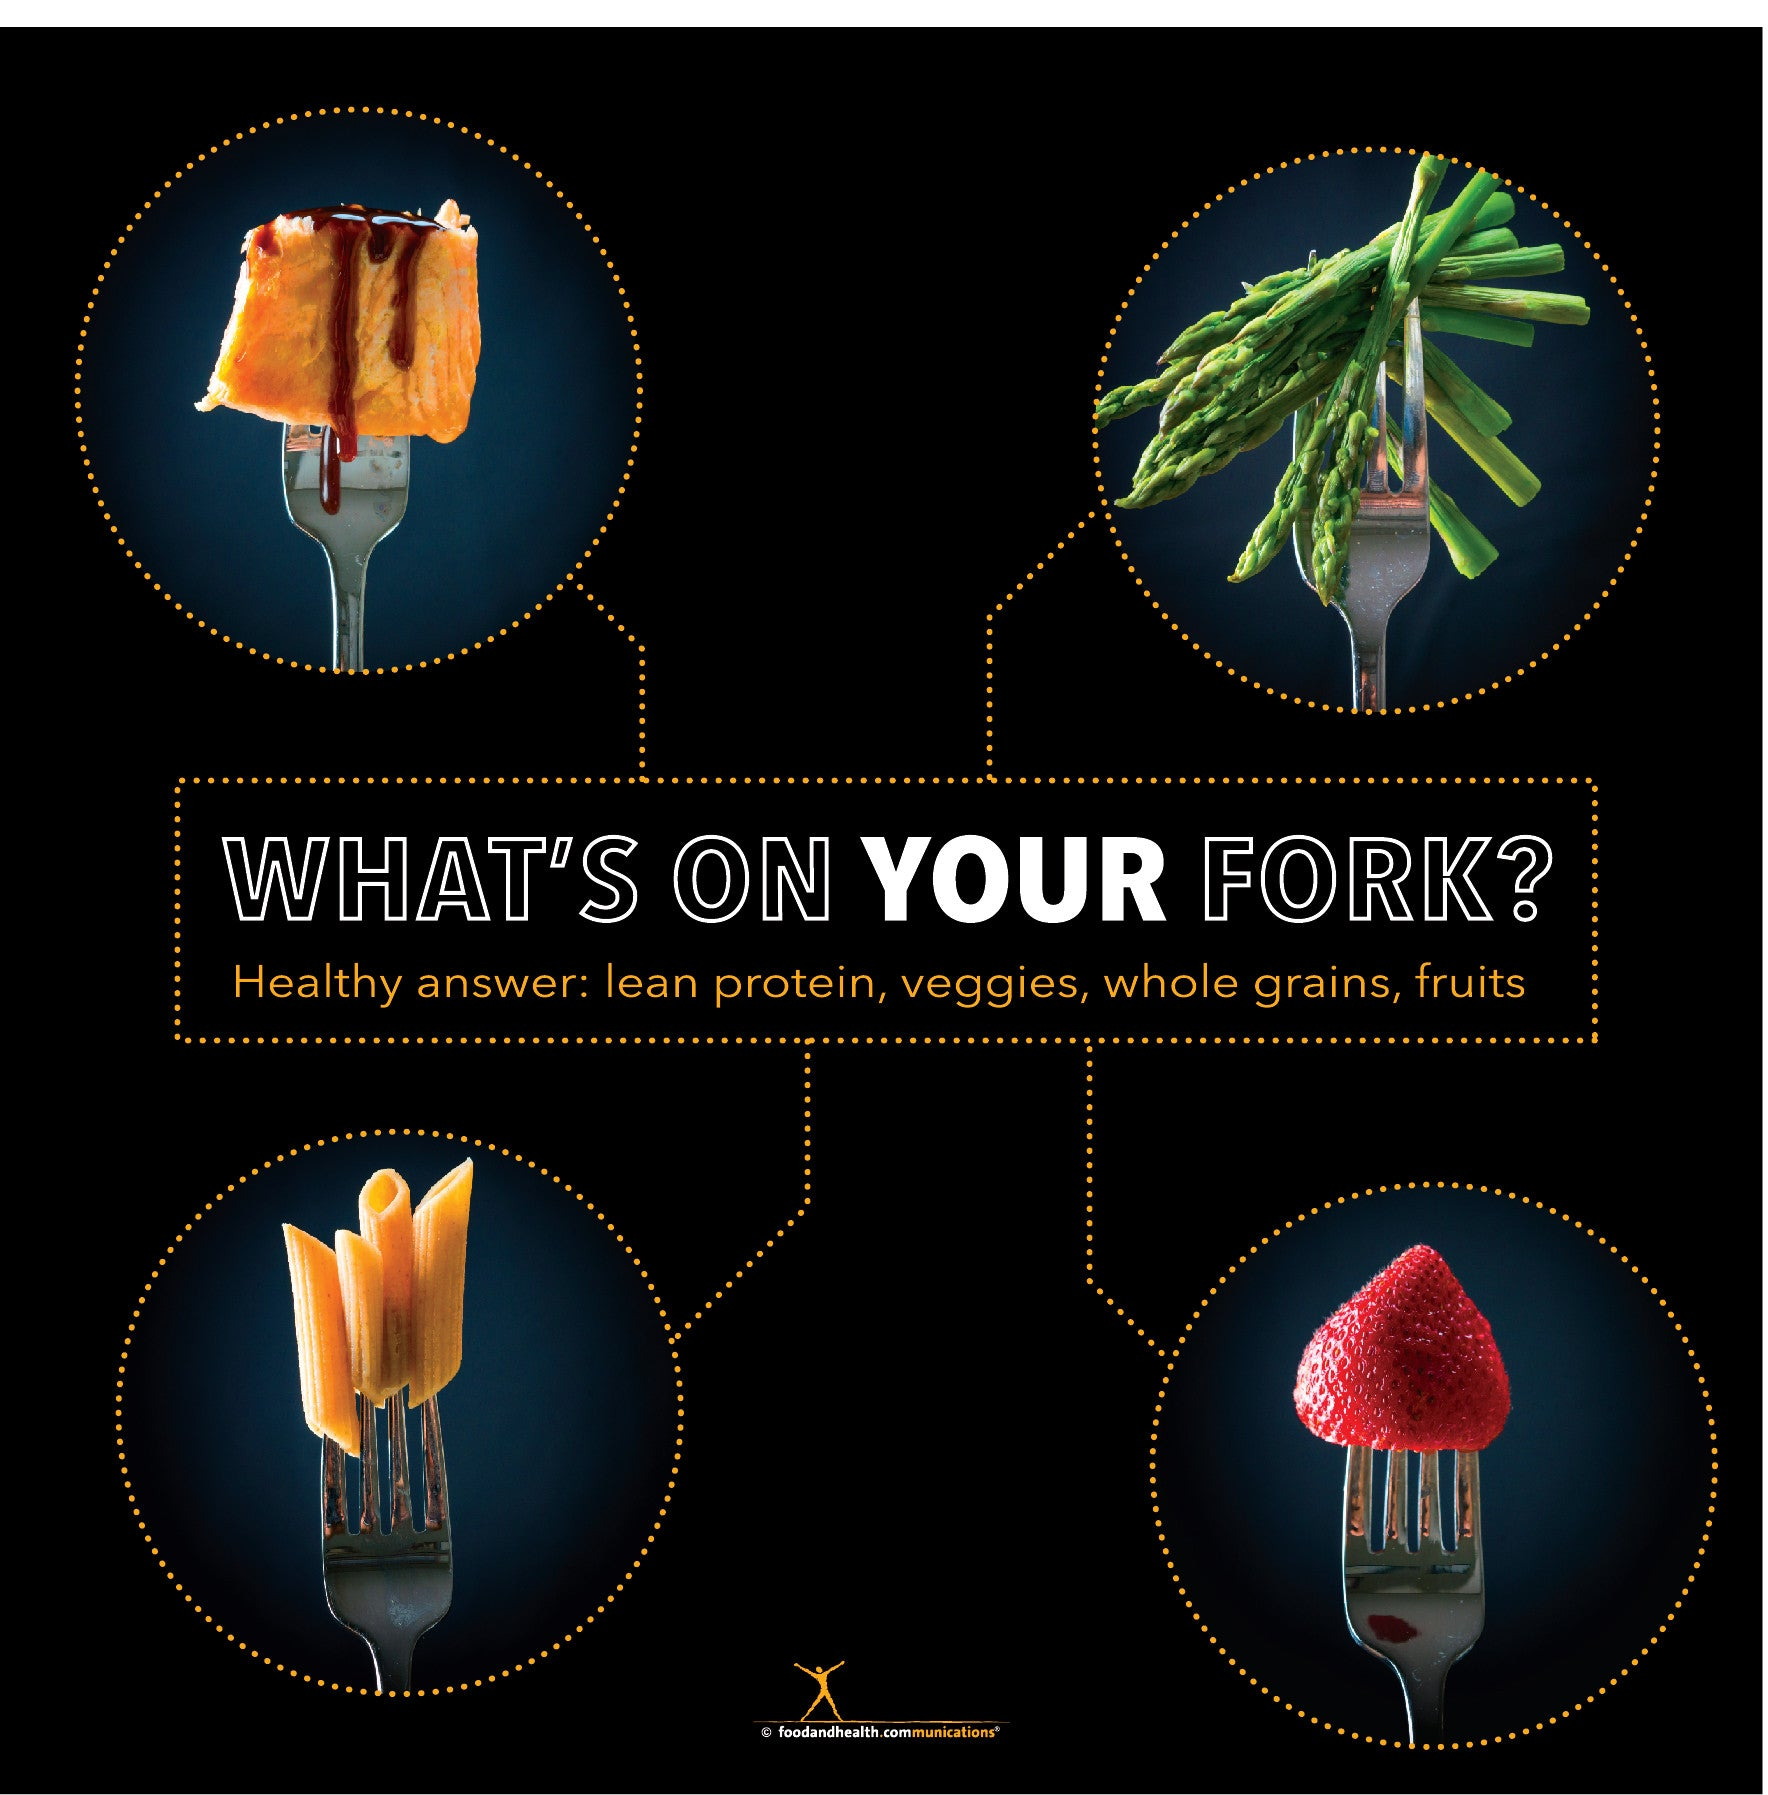 "What's On Your Fork? Bulletin Board Banner 24"" x 24"" Square Banner for Bulletin Boards, Walls, and More - Nutrition Education Store"